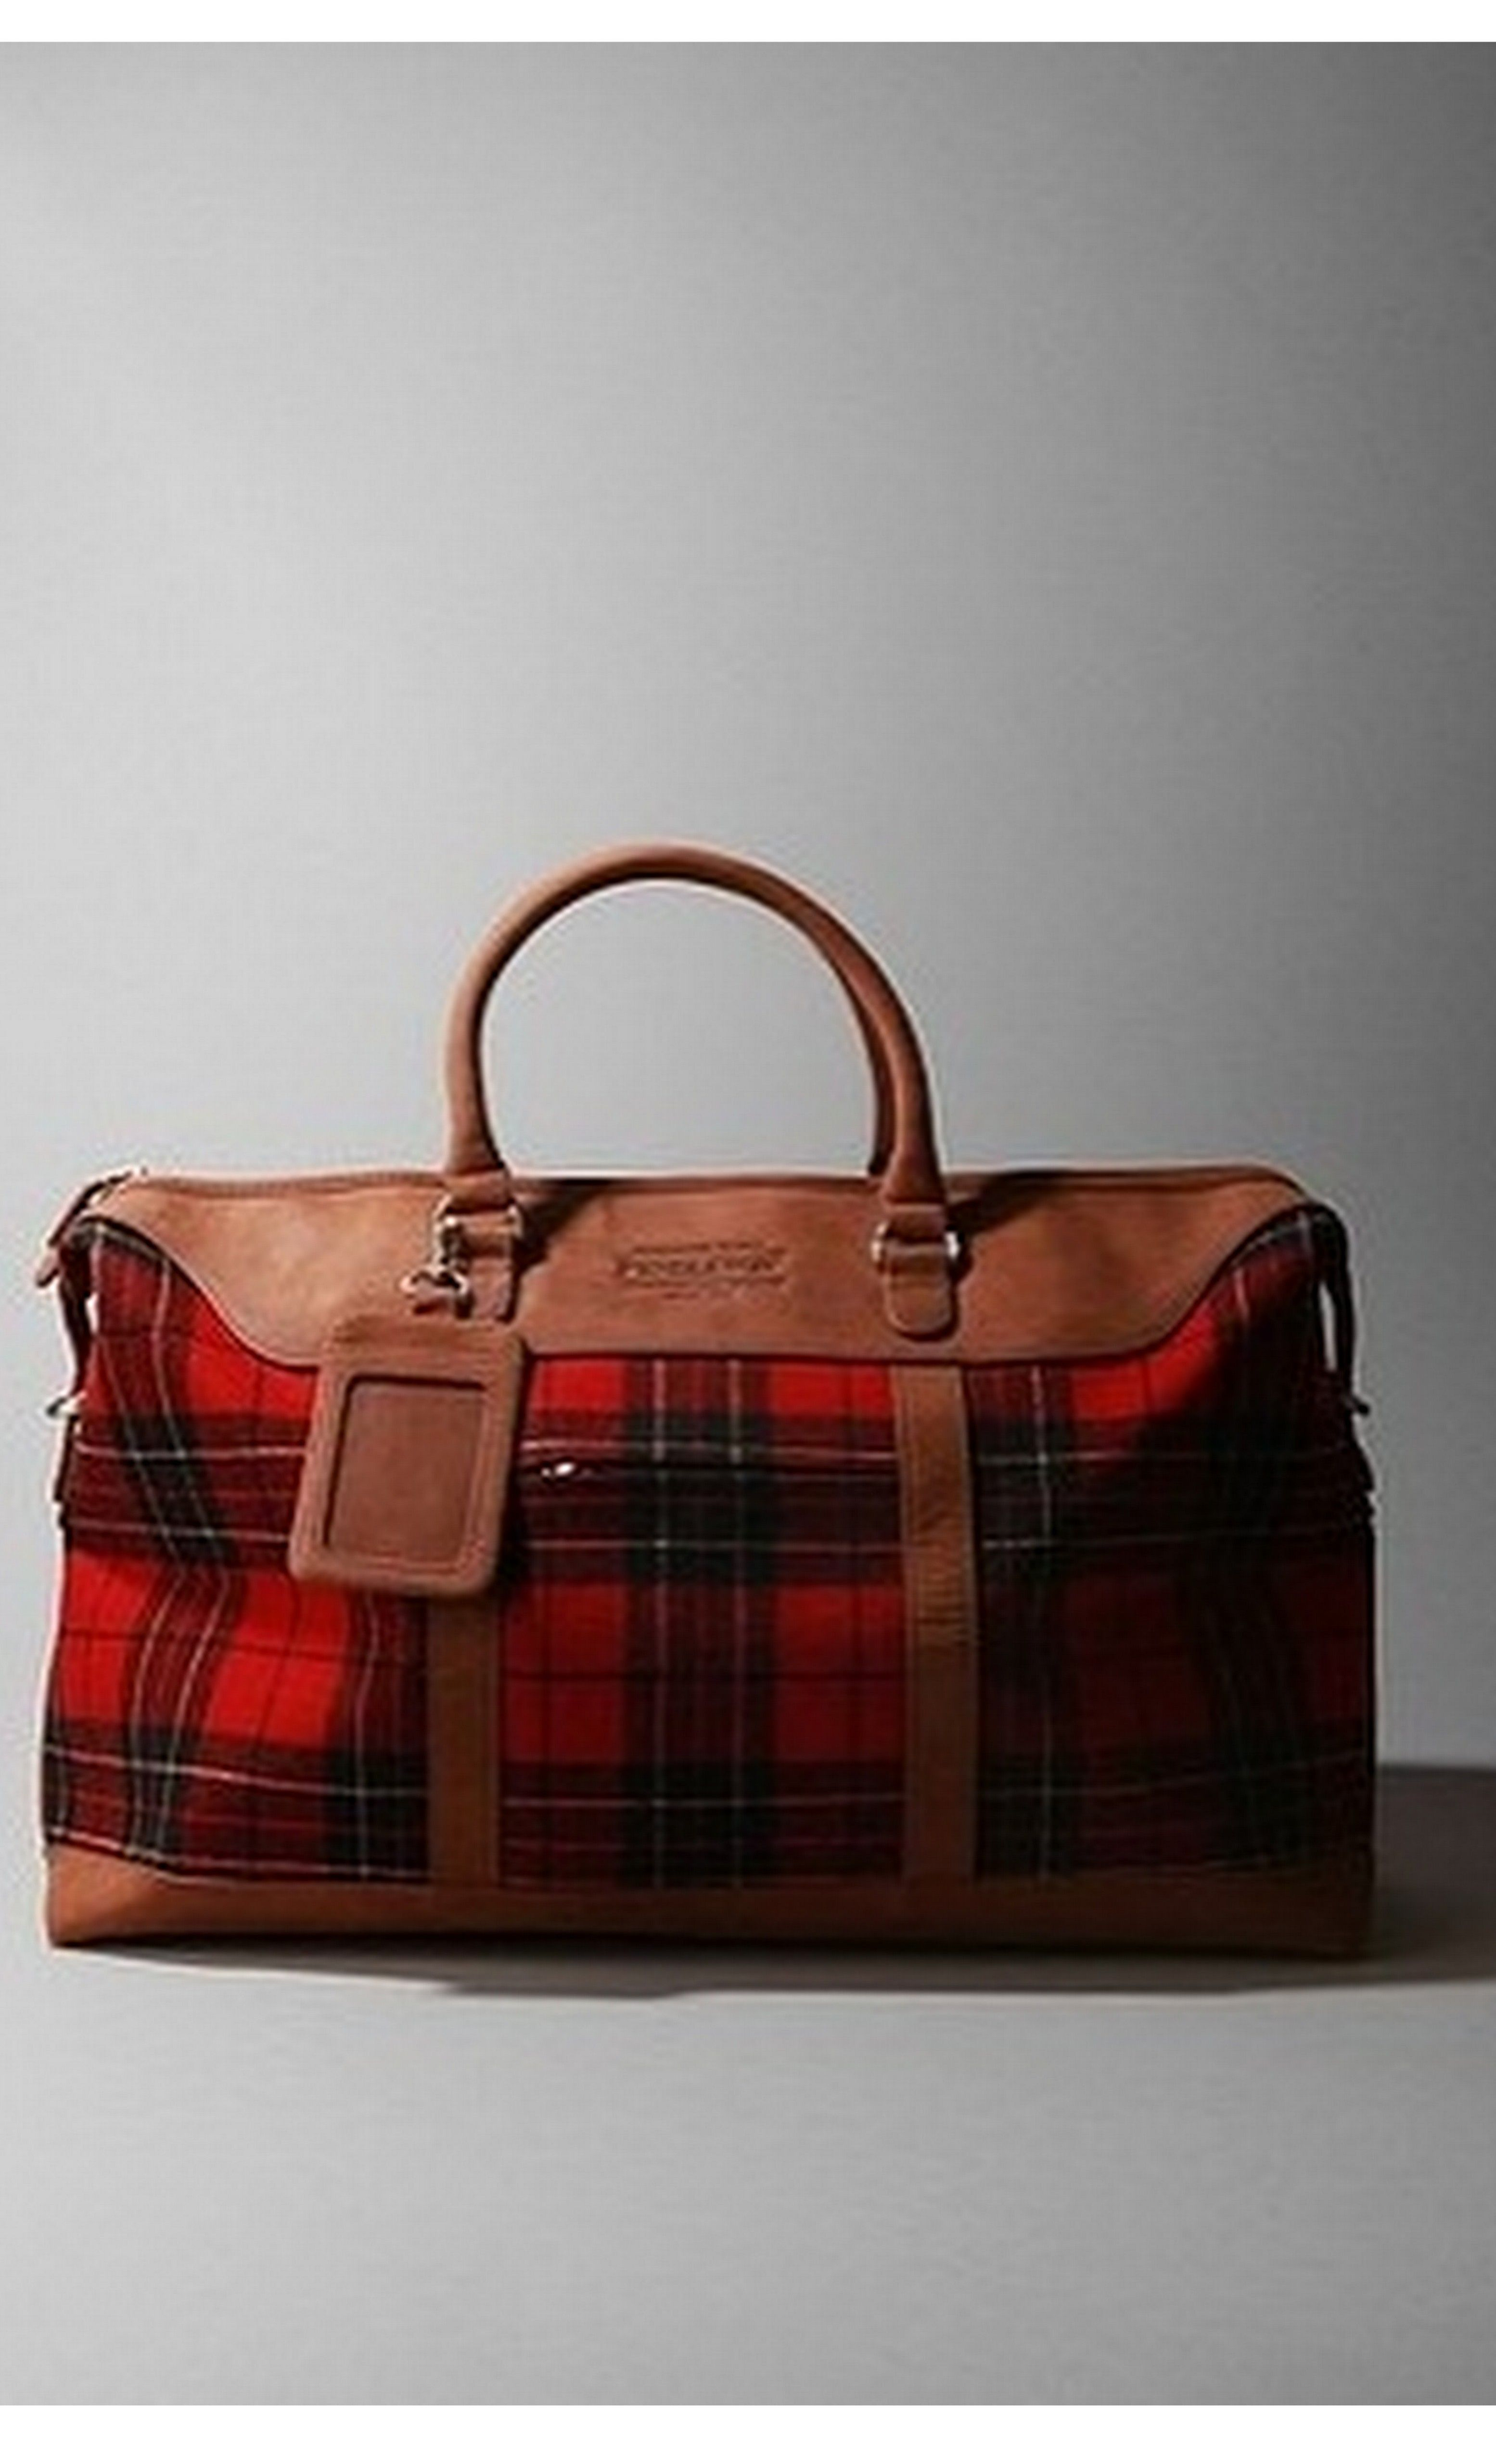 Details about Coach Weekender Bag Fashion for Women